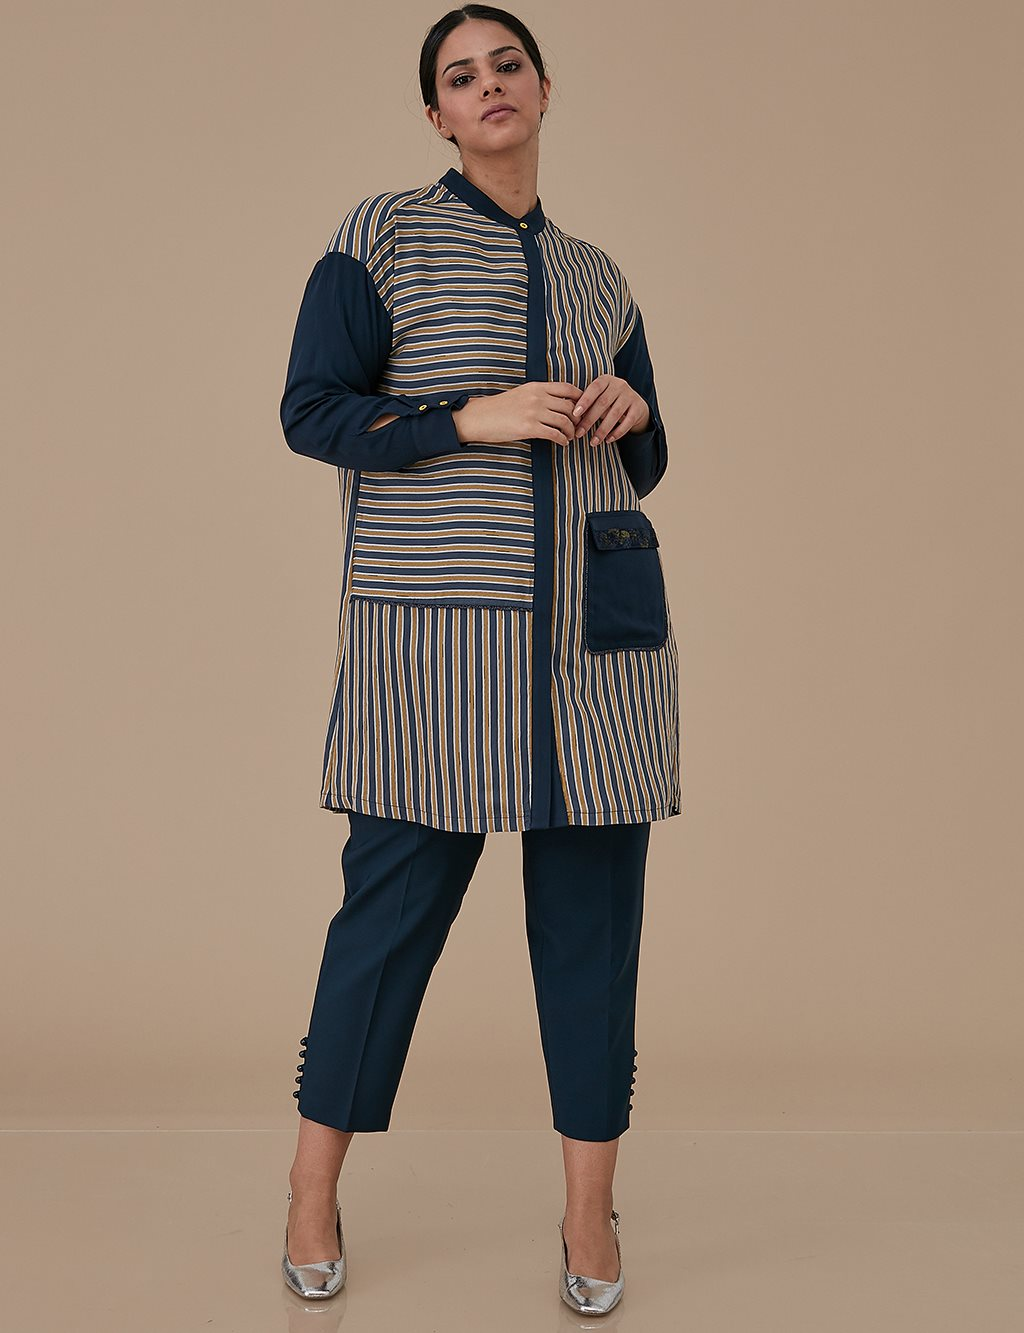 Striped Tunic With Sequin A9 21181 Navy